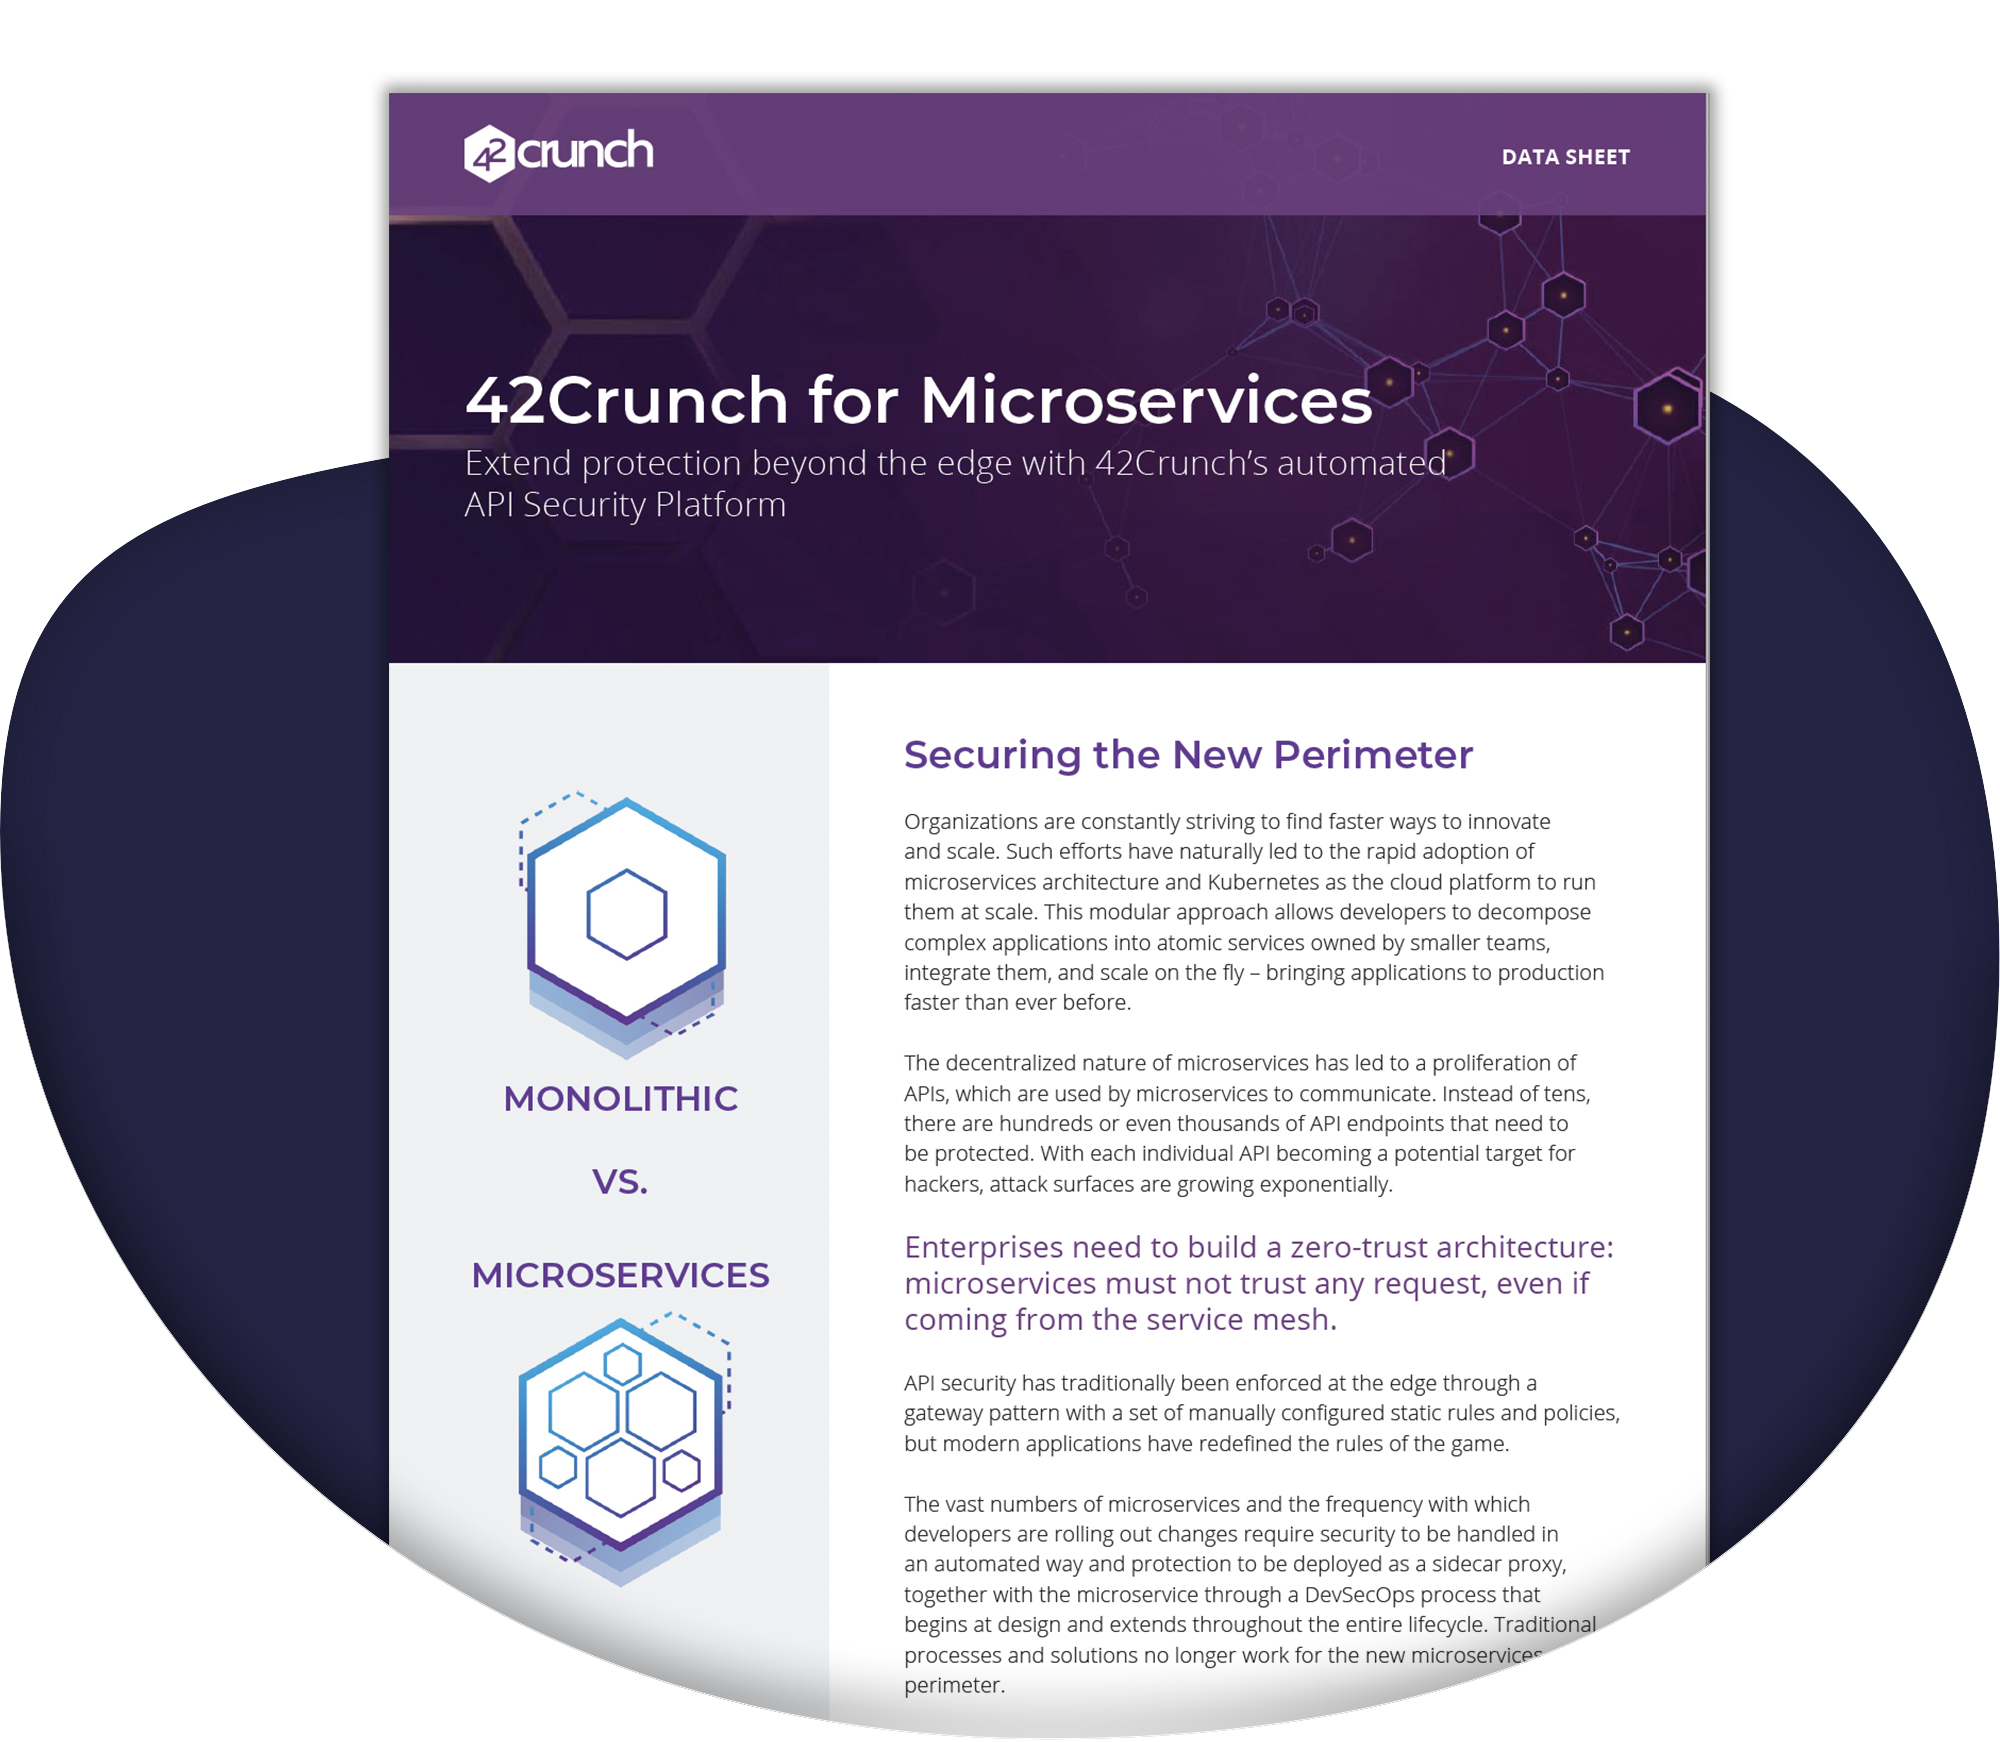 42Crunch for Microservices